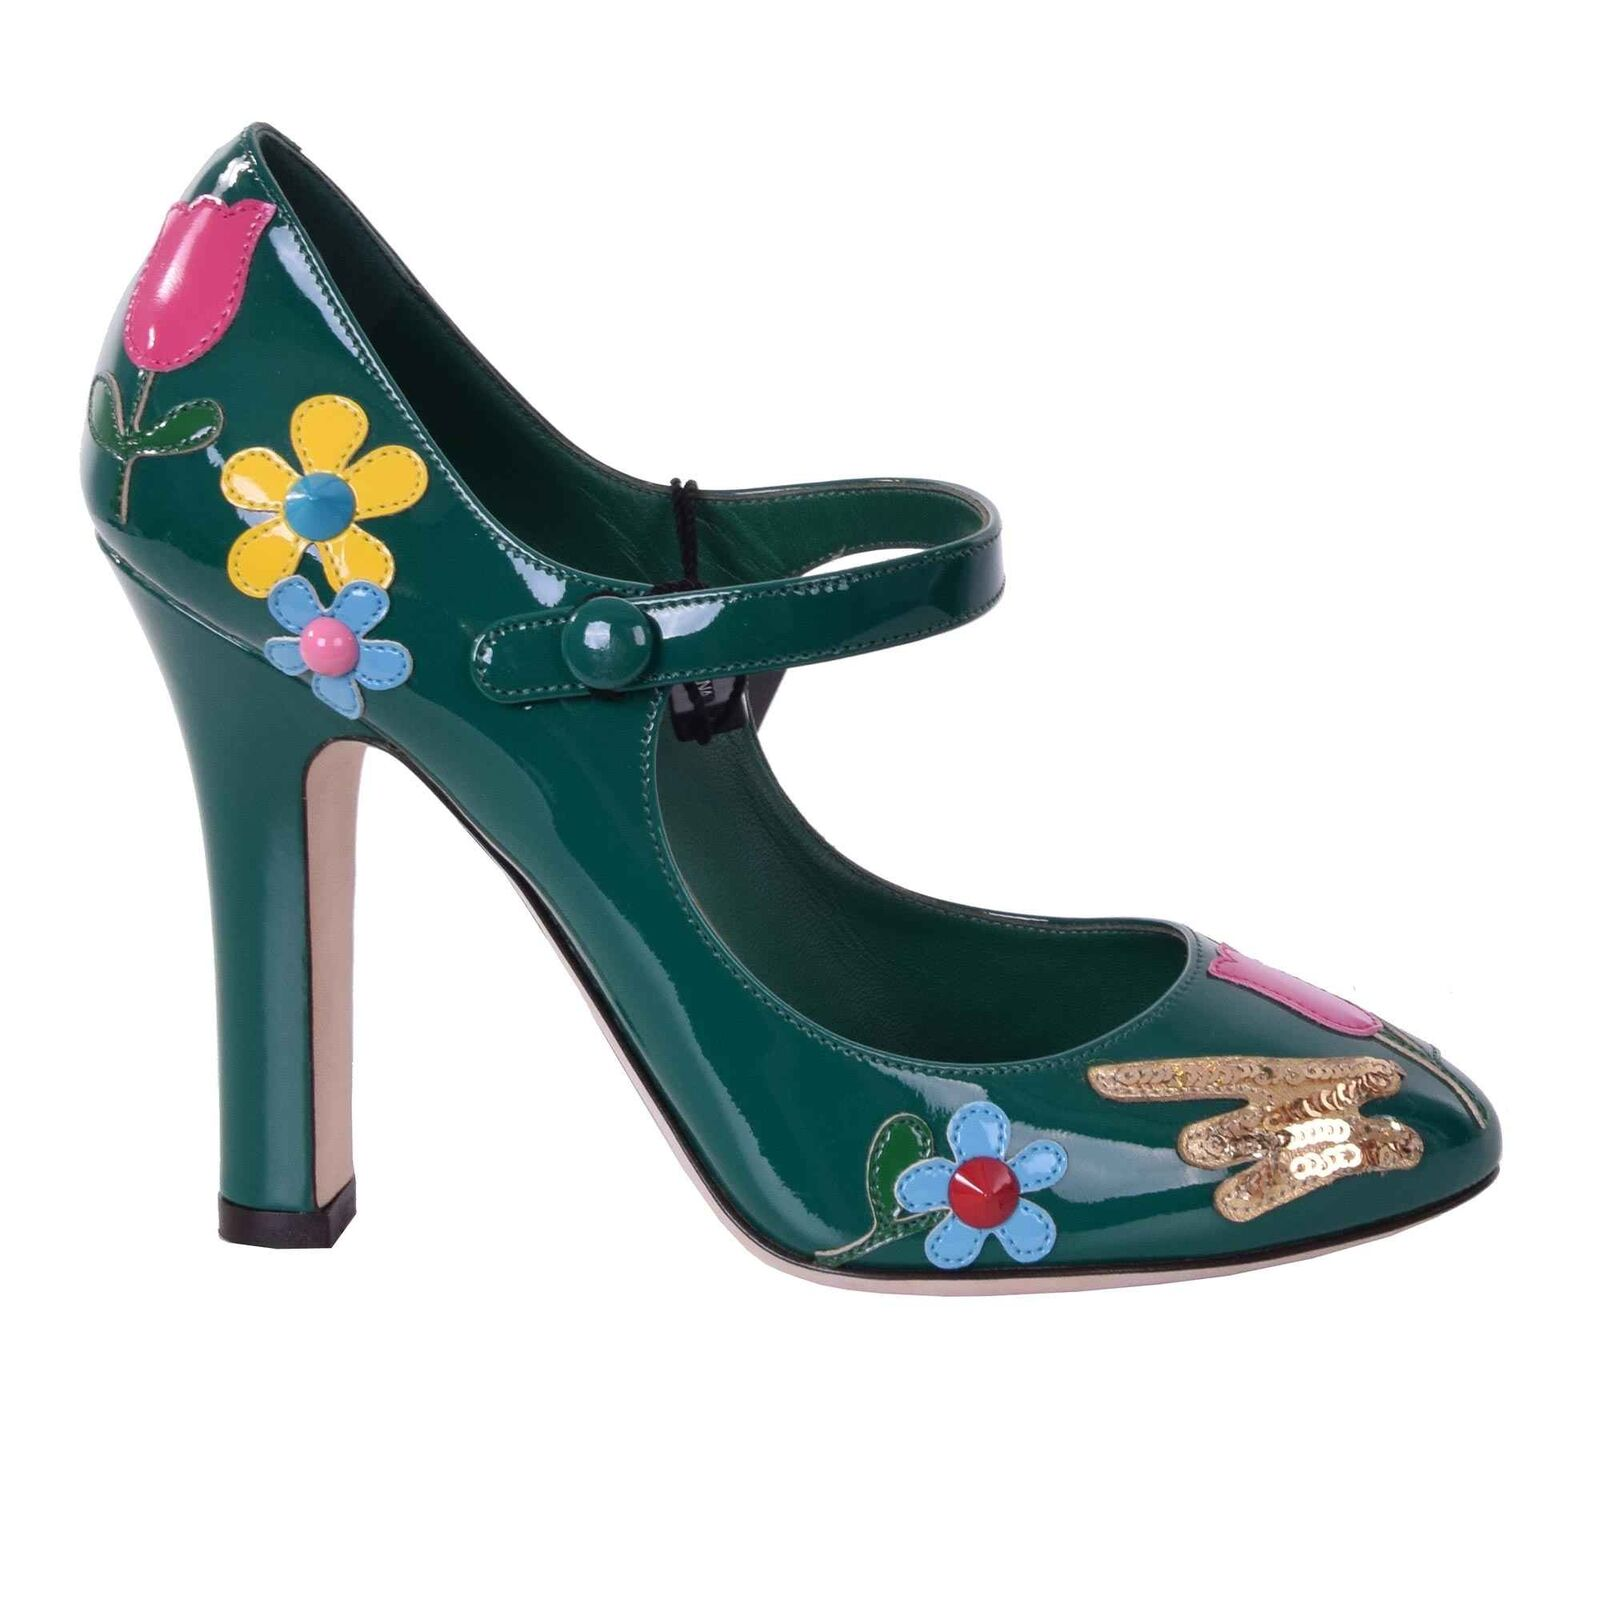 DOLCE & GABBANA Lackleder Mary Mary Mary Jane Pumps Schuhe Blumen Applikationen Grün 06761 f70517